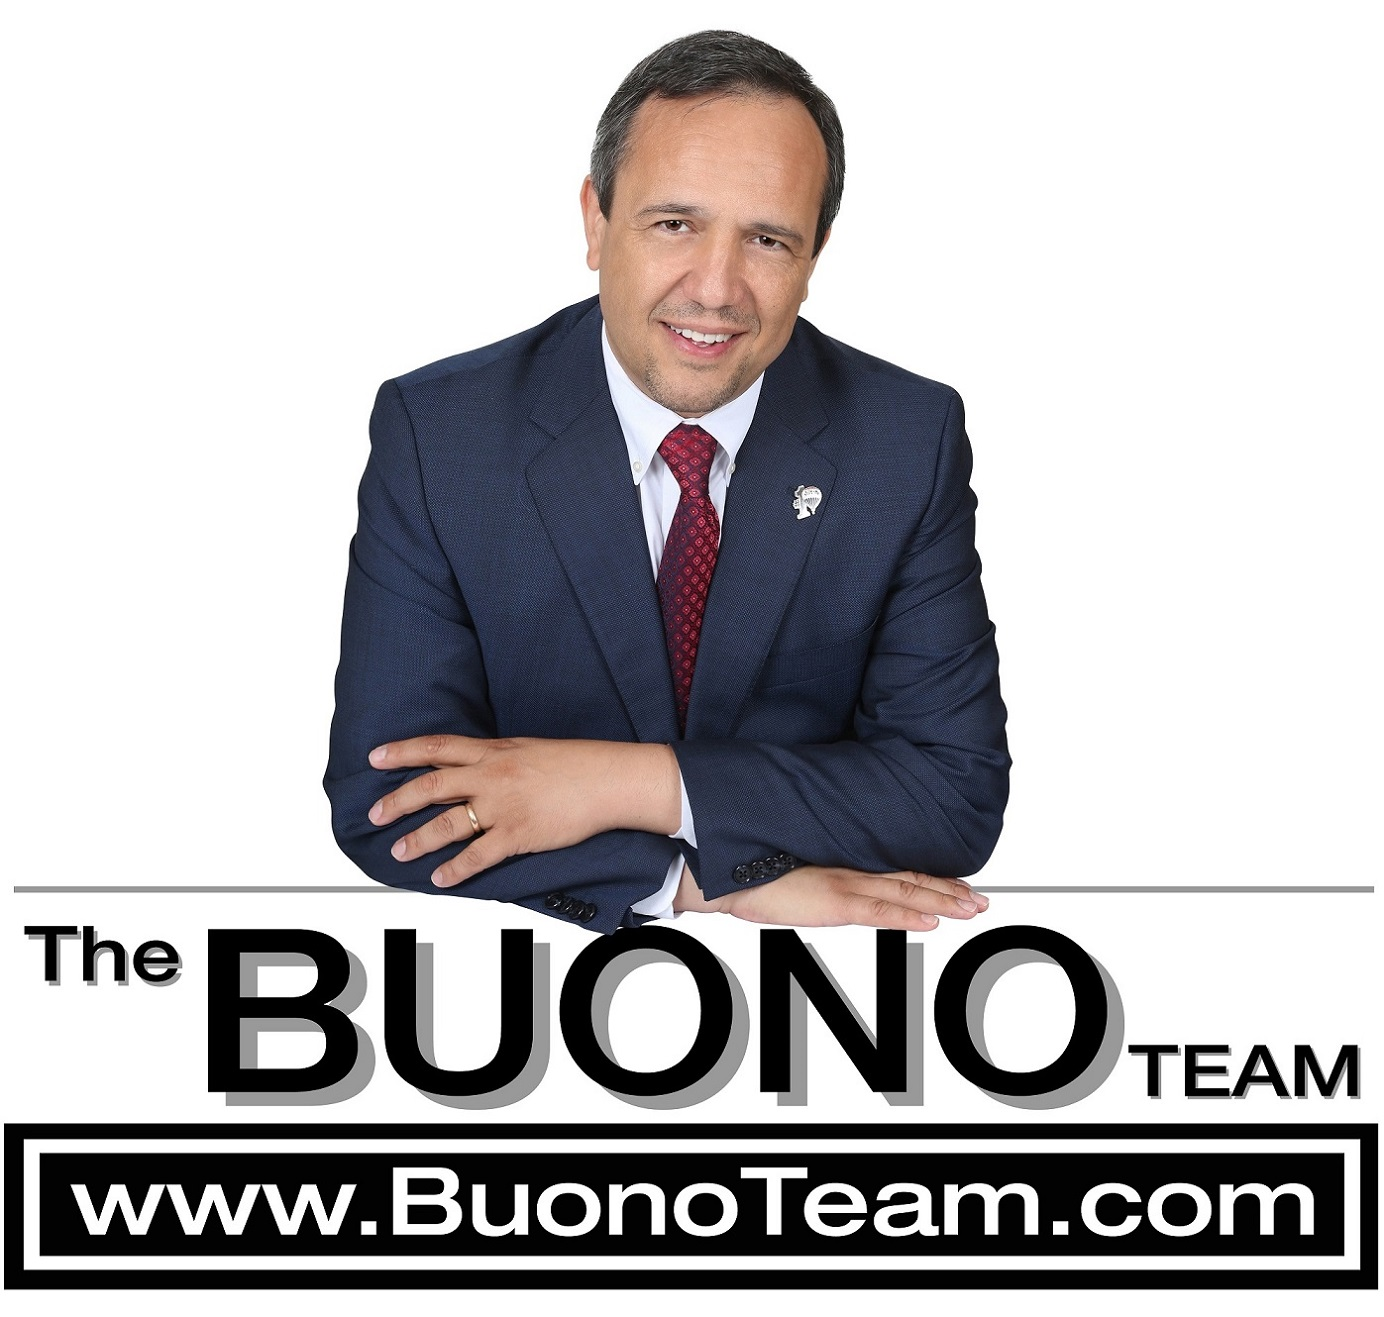 Joseph G Buono & The Buono Team photo